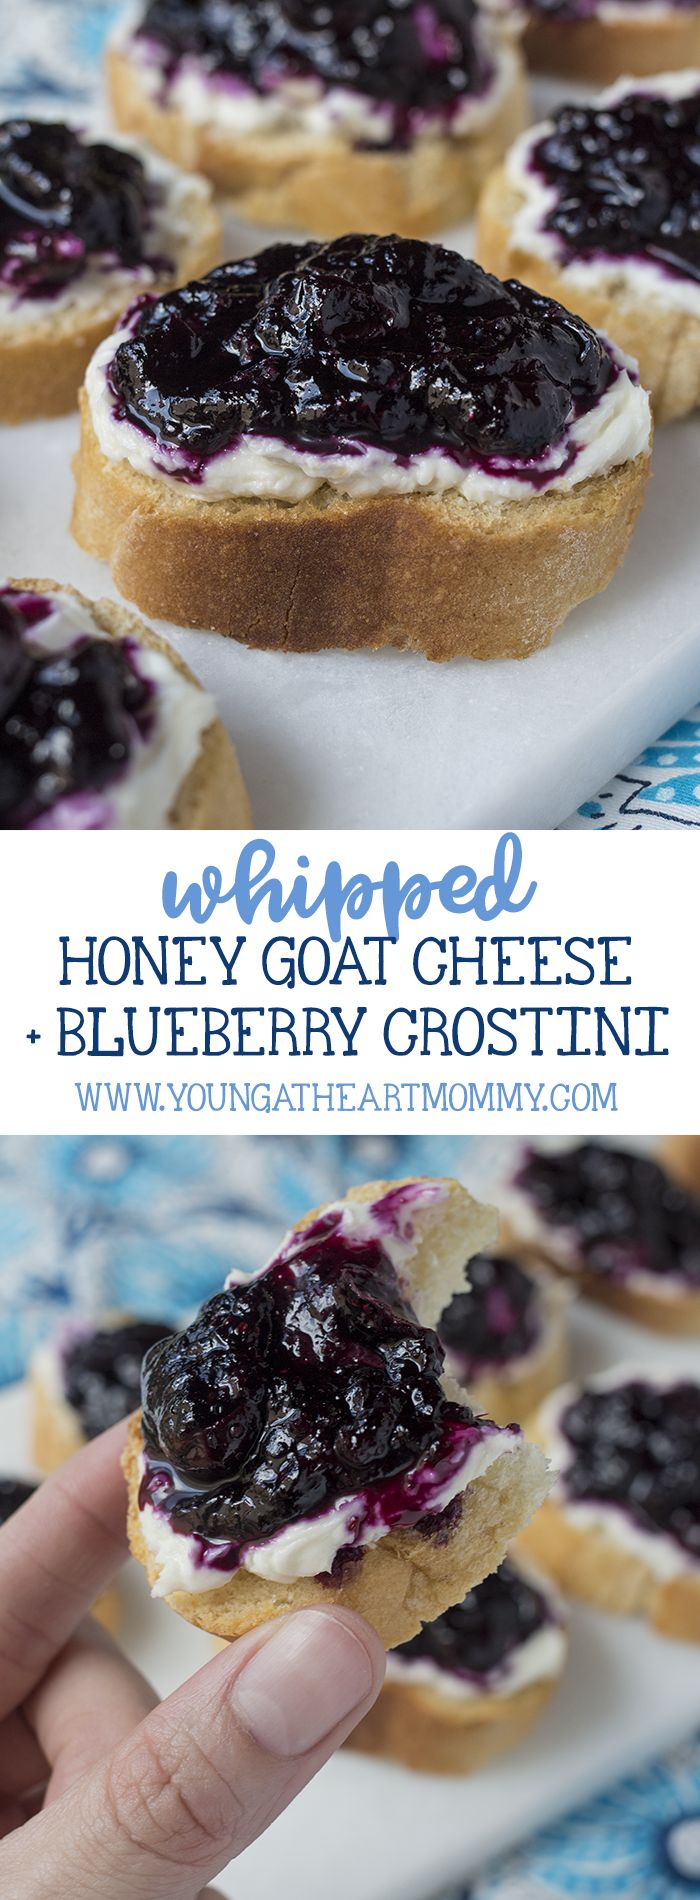 These crispy crostini topped with whipped honey goat cheese and a blueberry compote are pure perfection!